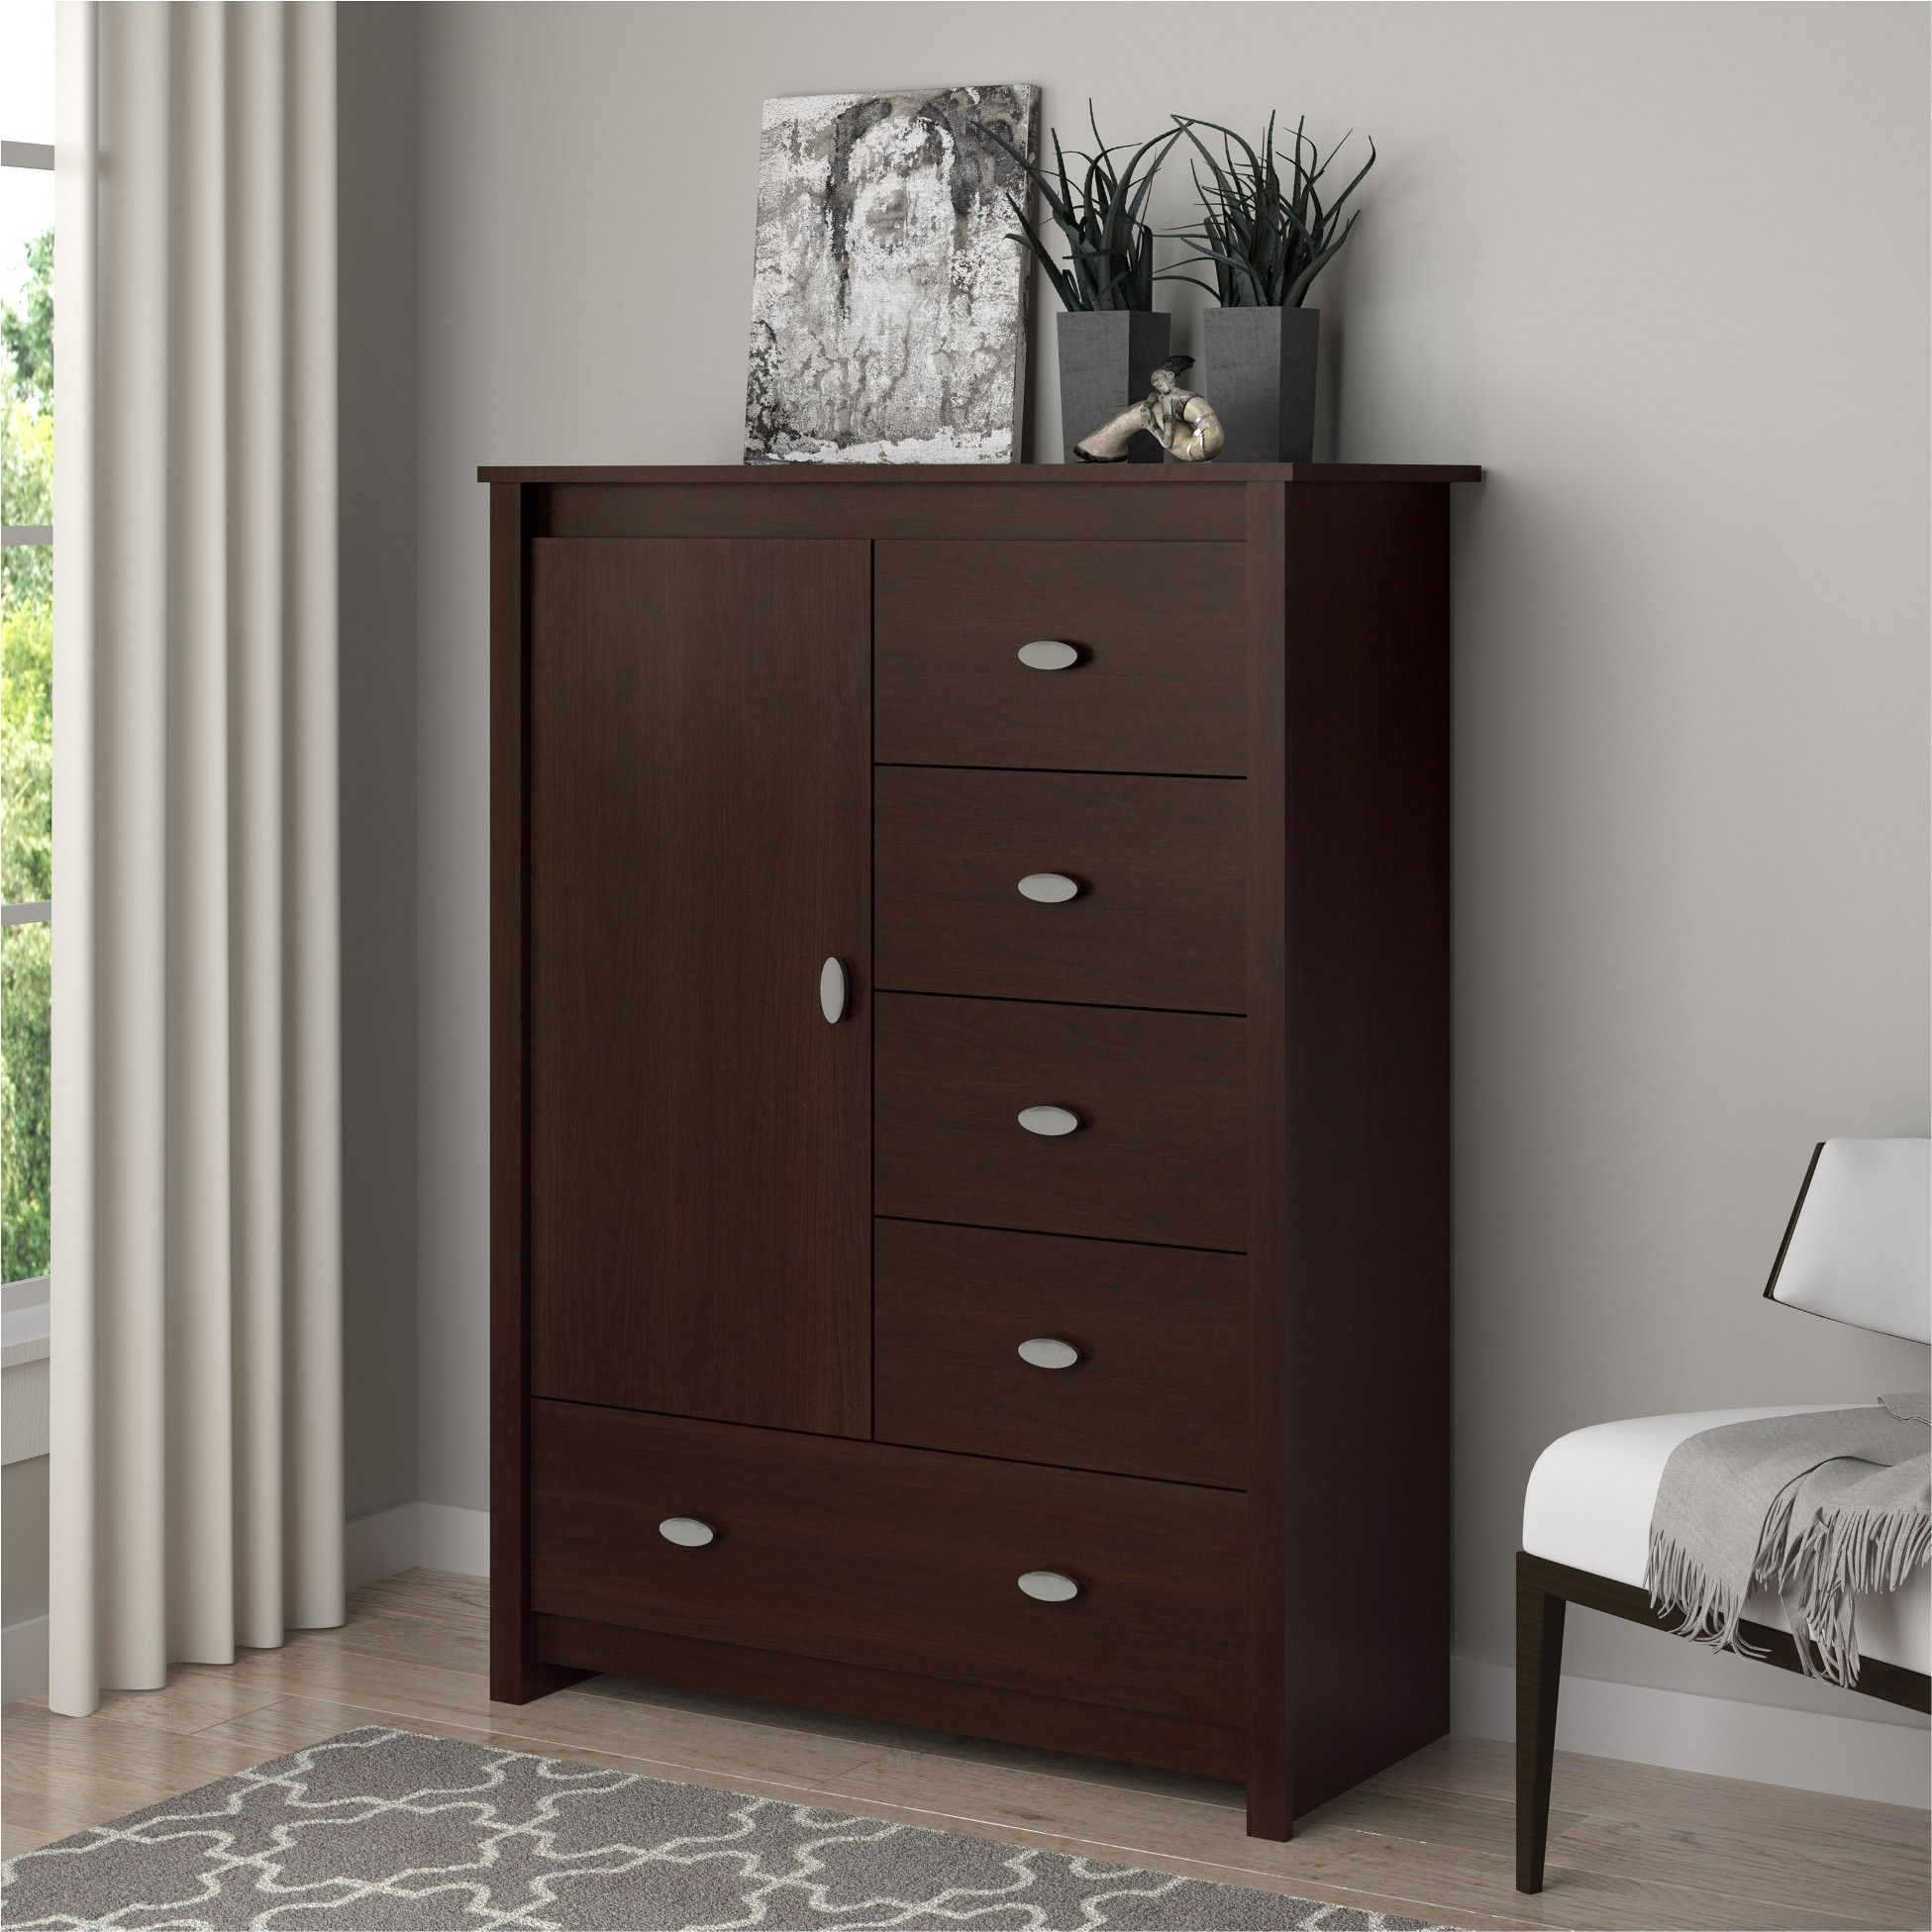 Essential Home Anderson Chest Brown Bedroom Dressers Home Interior